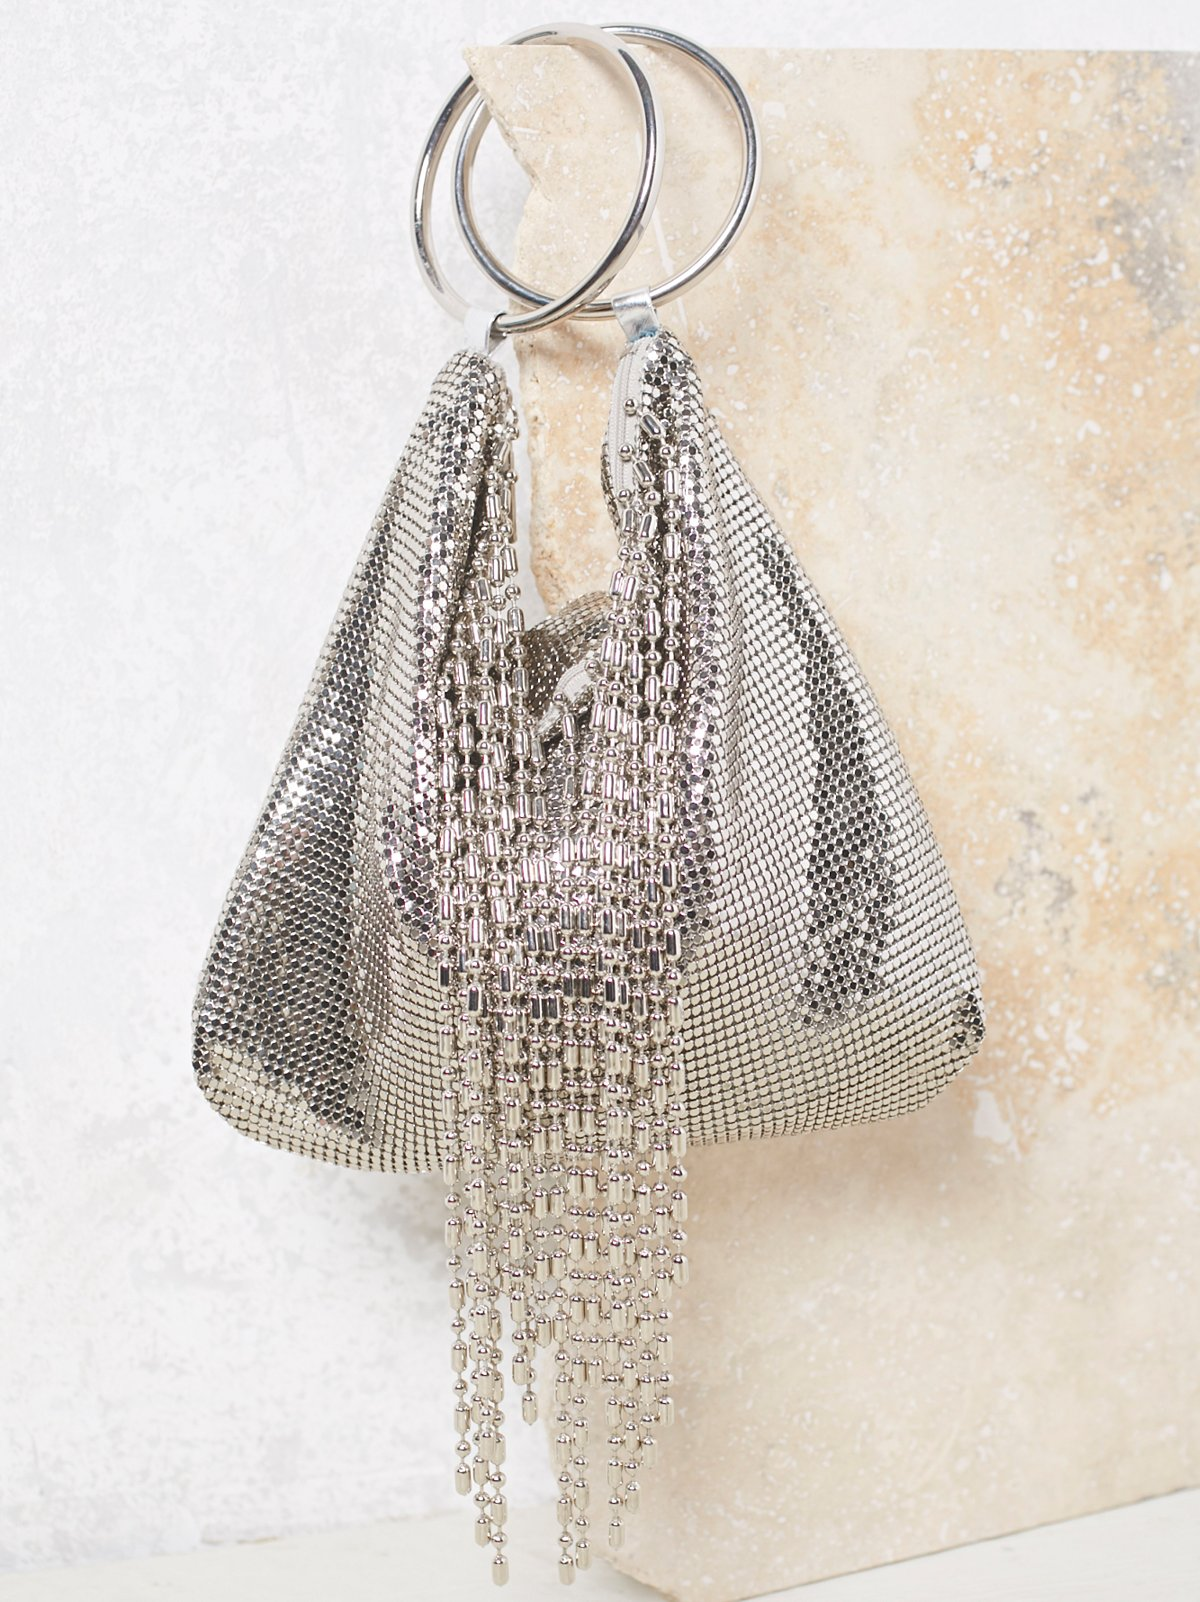 Ball Fringe Chainmail Clutch